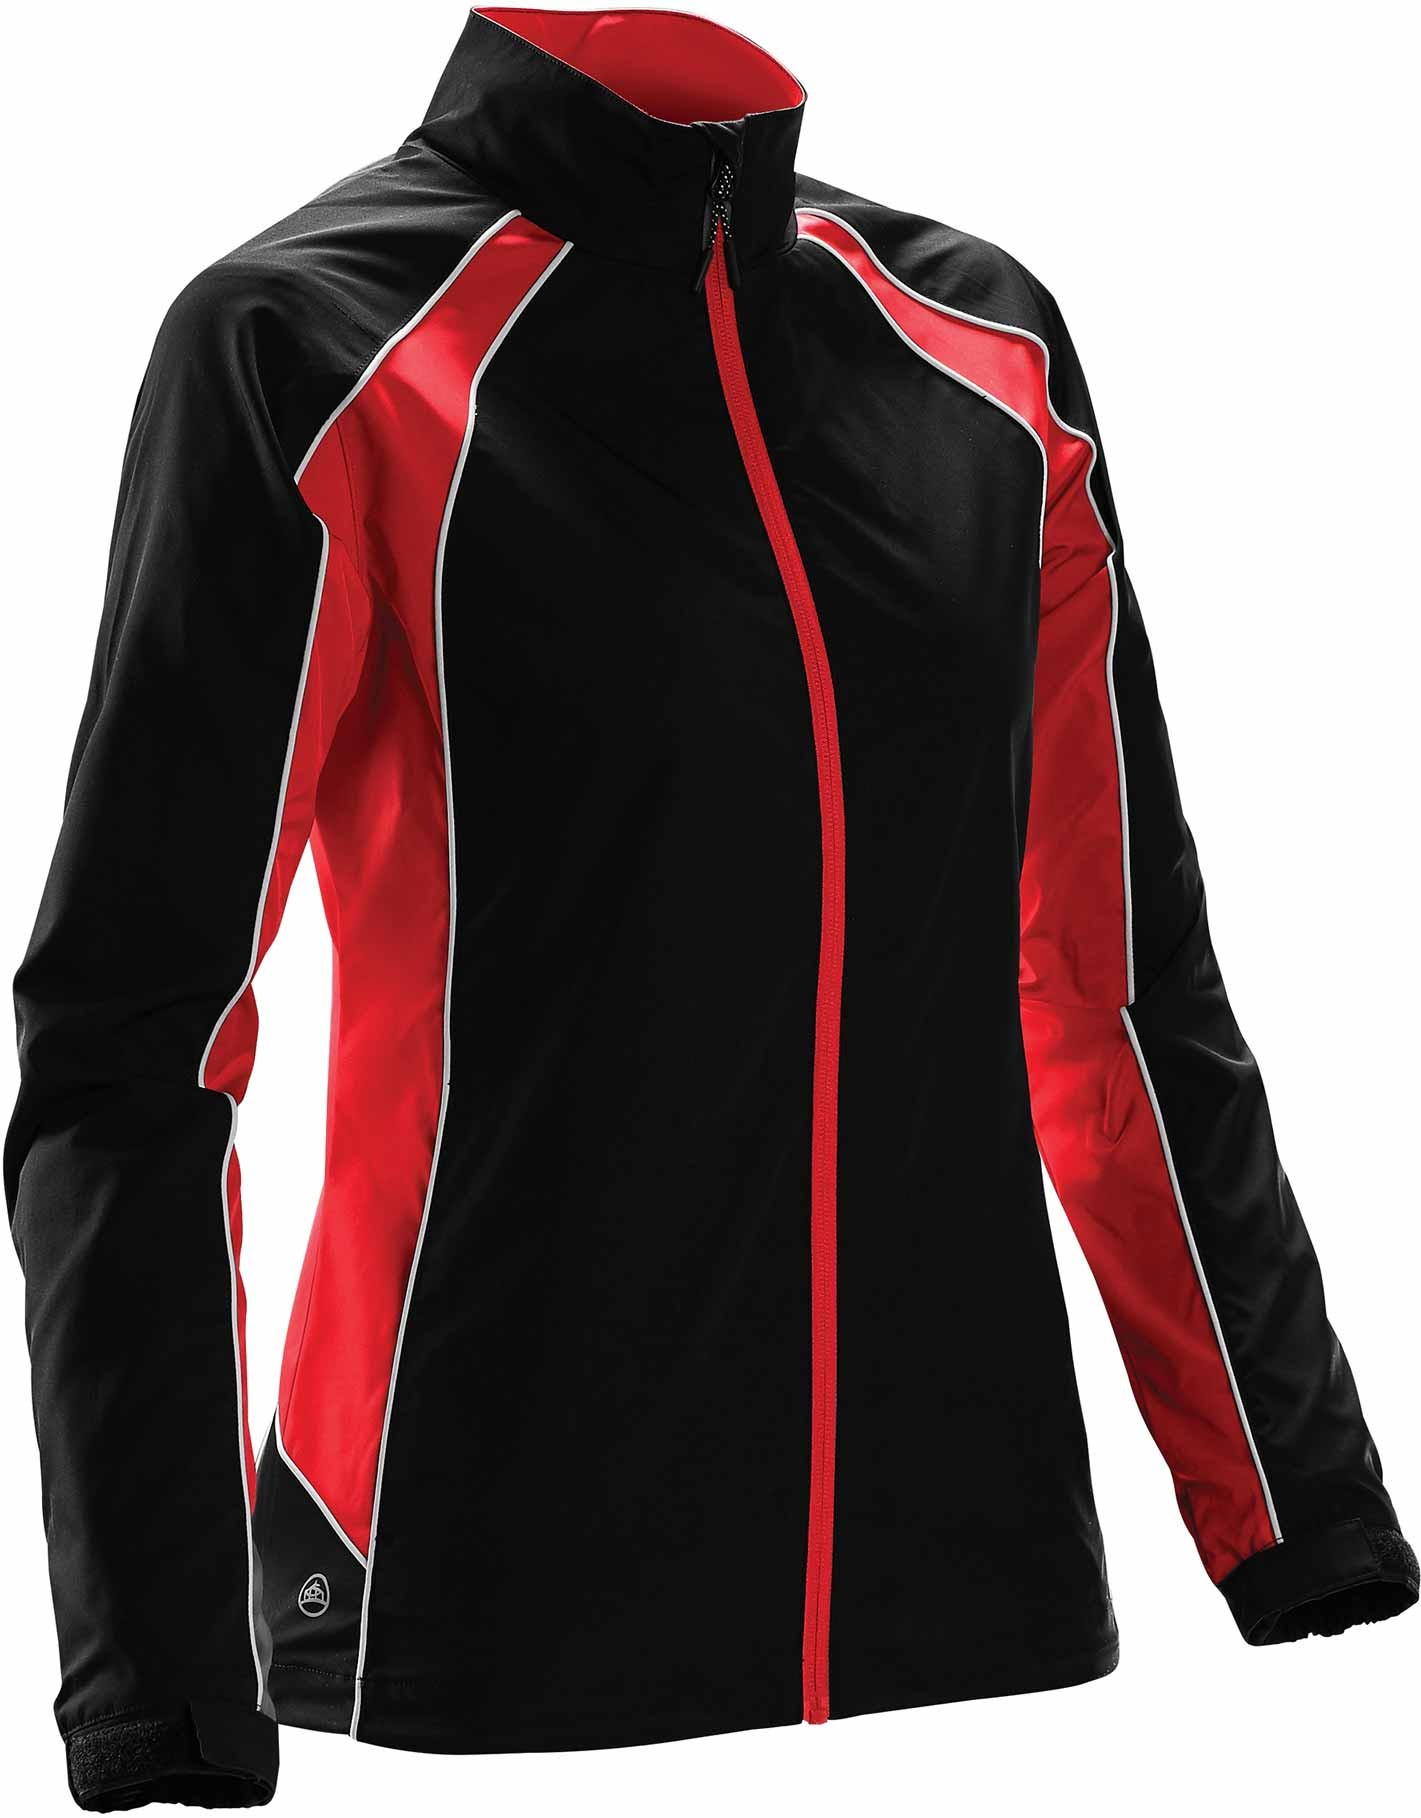 Stormtech STXJ-2W - Women's Warrior Training Jacket